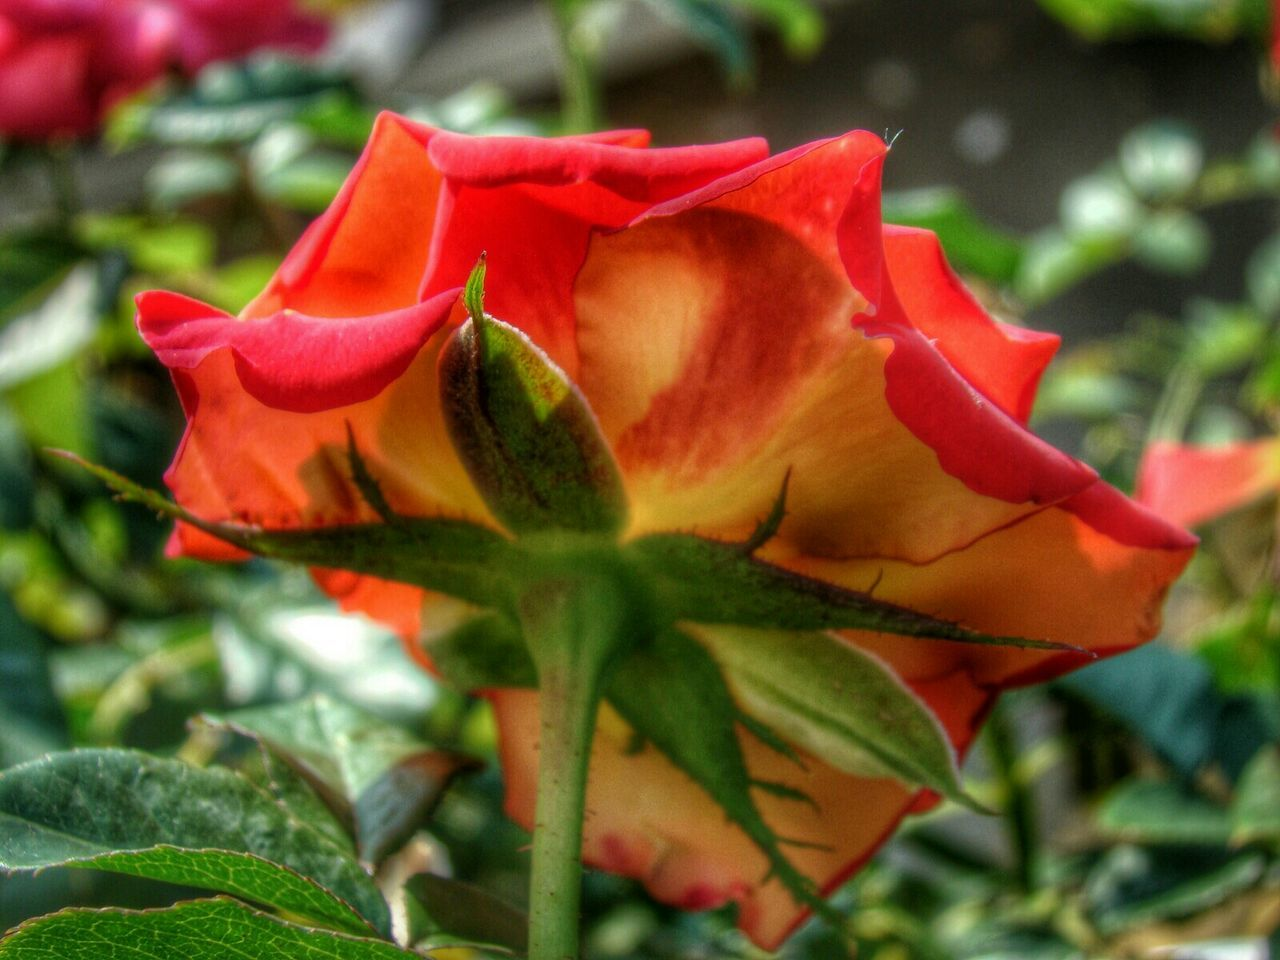 flower, petal, nature, growth, fragility, beauty in nature, plant, flower head, rose - flower, close-up, leaf, freshness, outdoors, red, day, blooming, no people